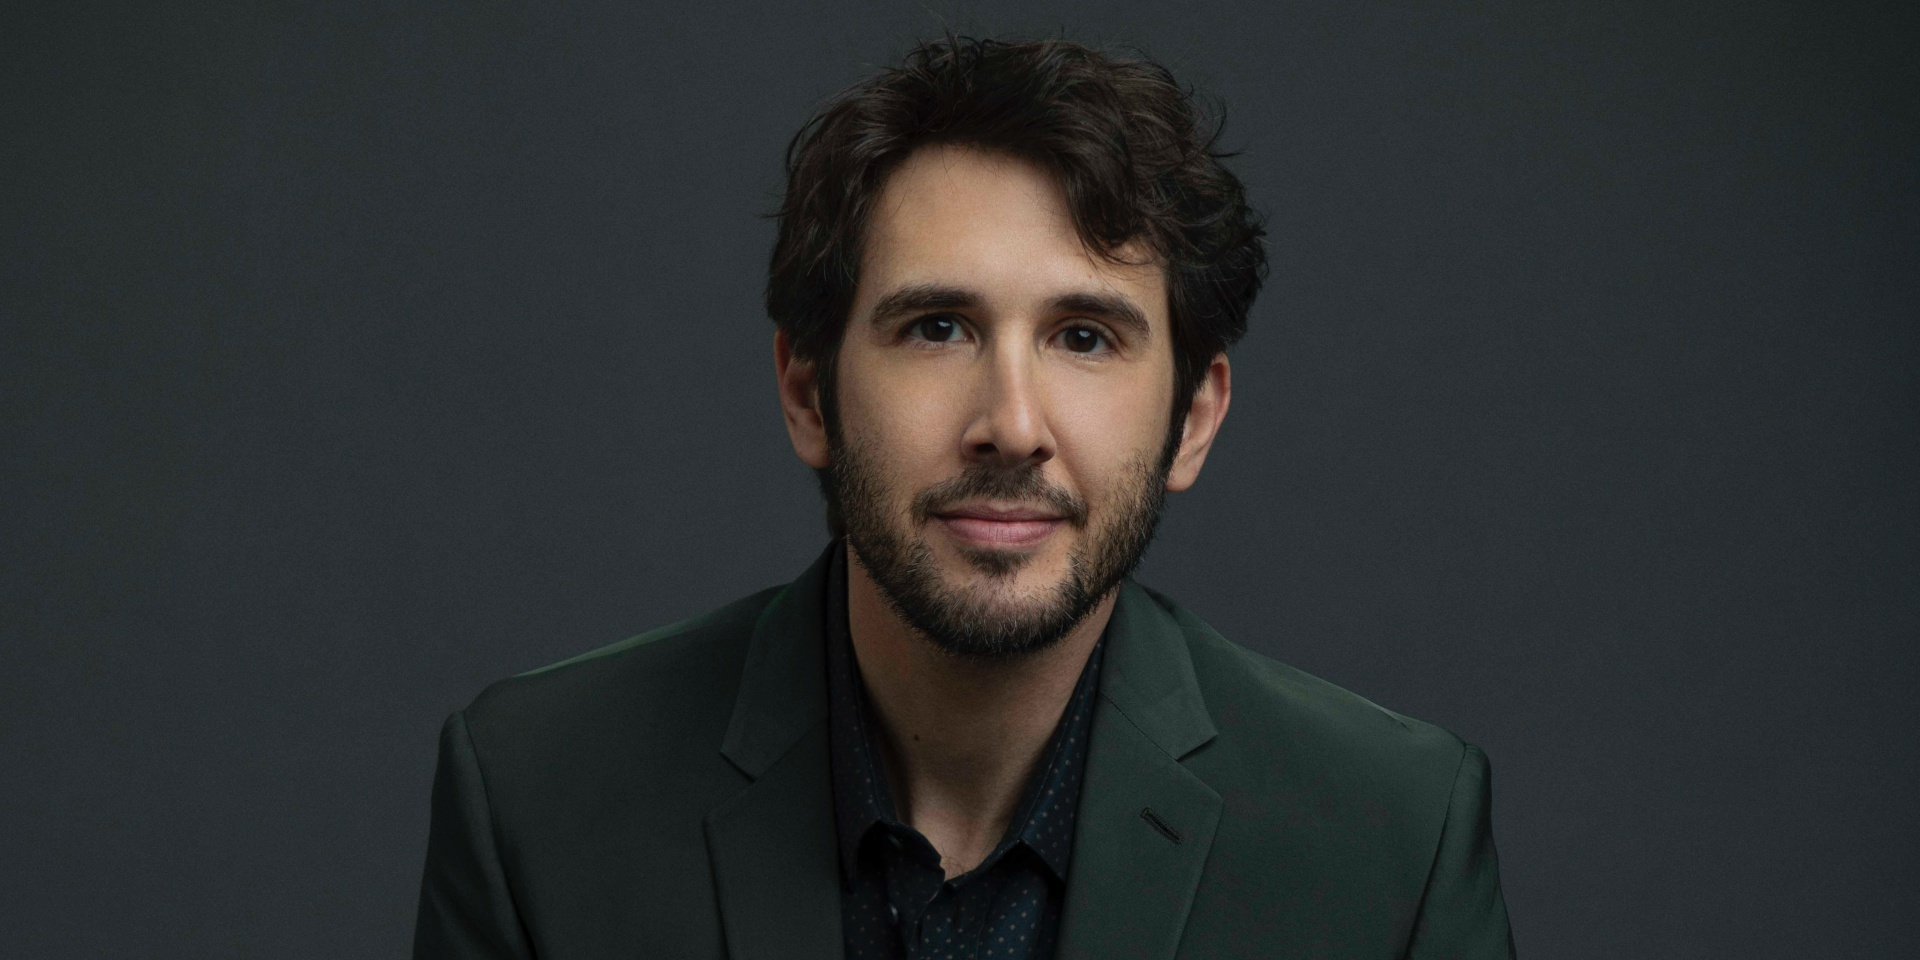 Josh Groban to perform in Singapore next year